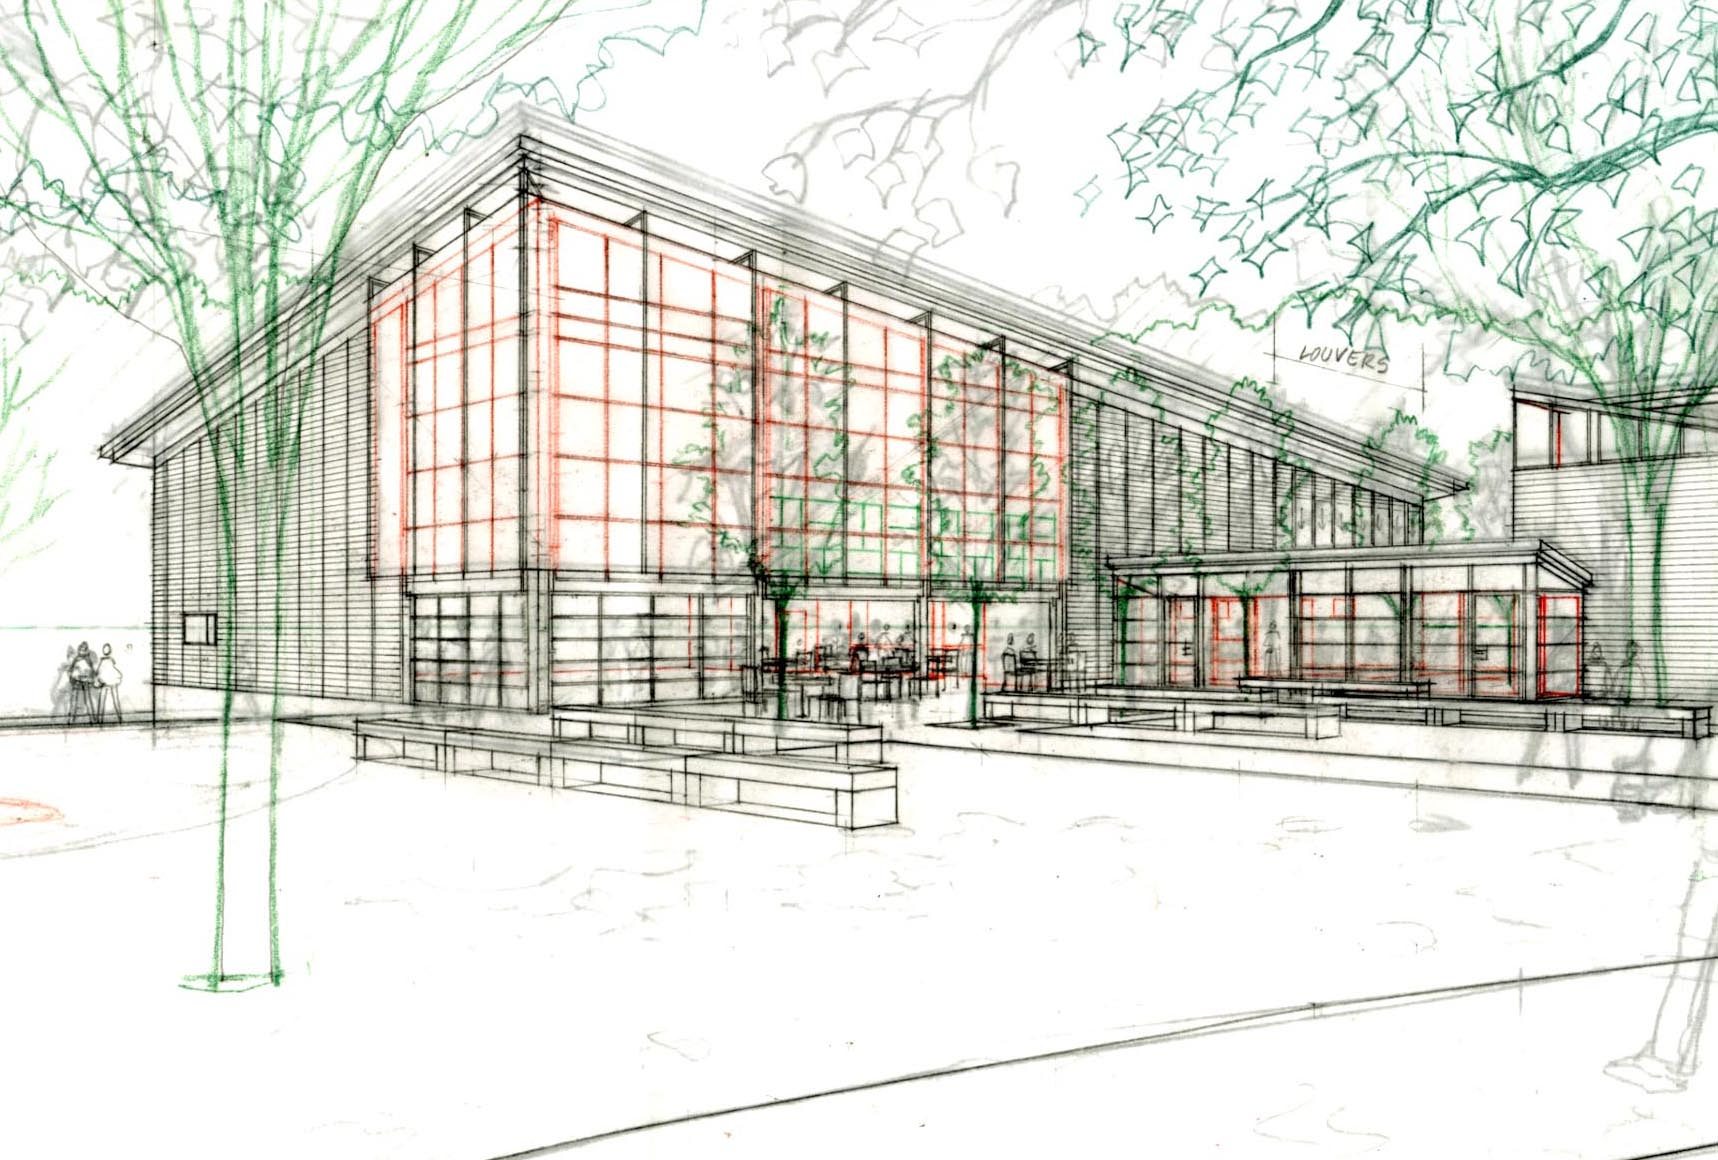 Perspective Sketch of Student Center